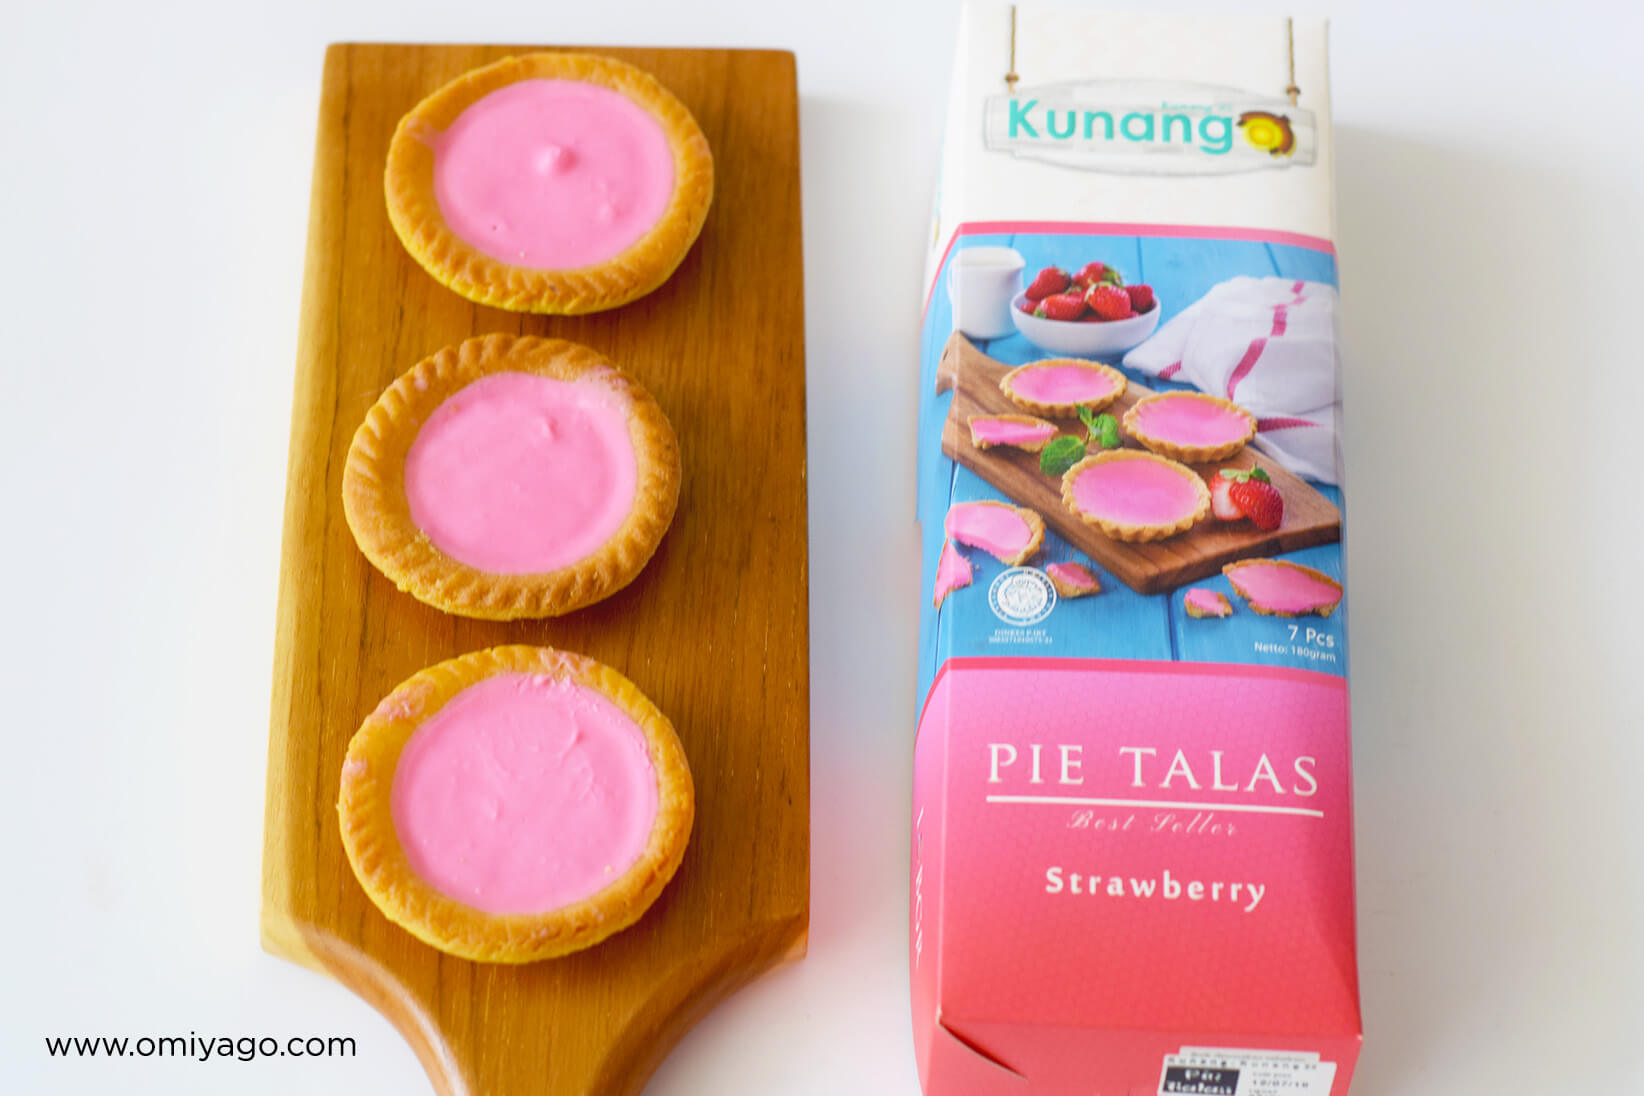 pie-talas-kunang-strawberry